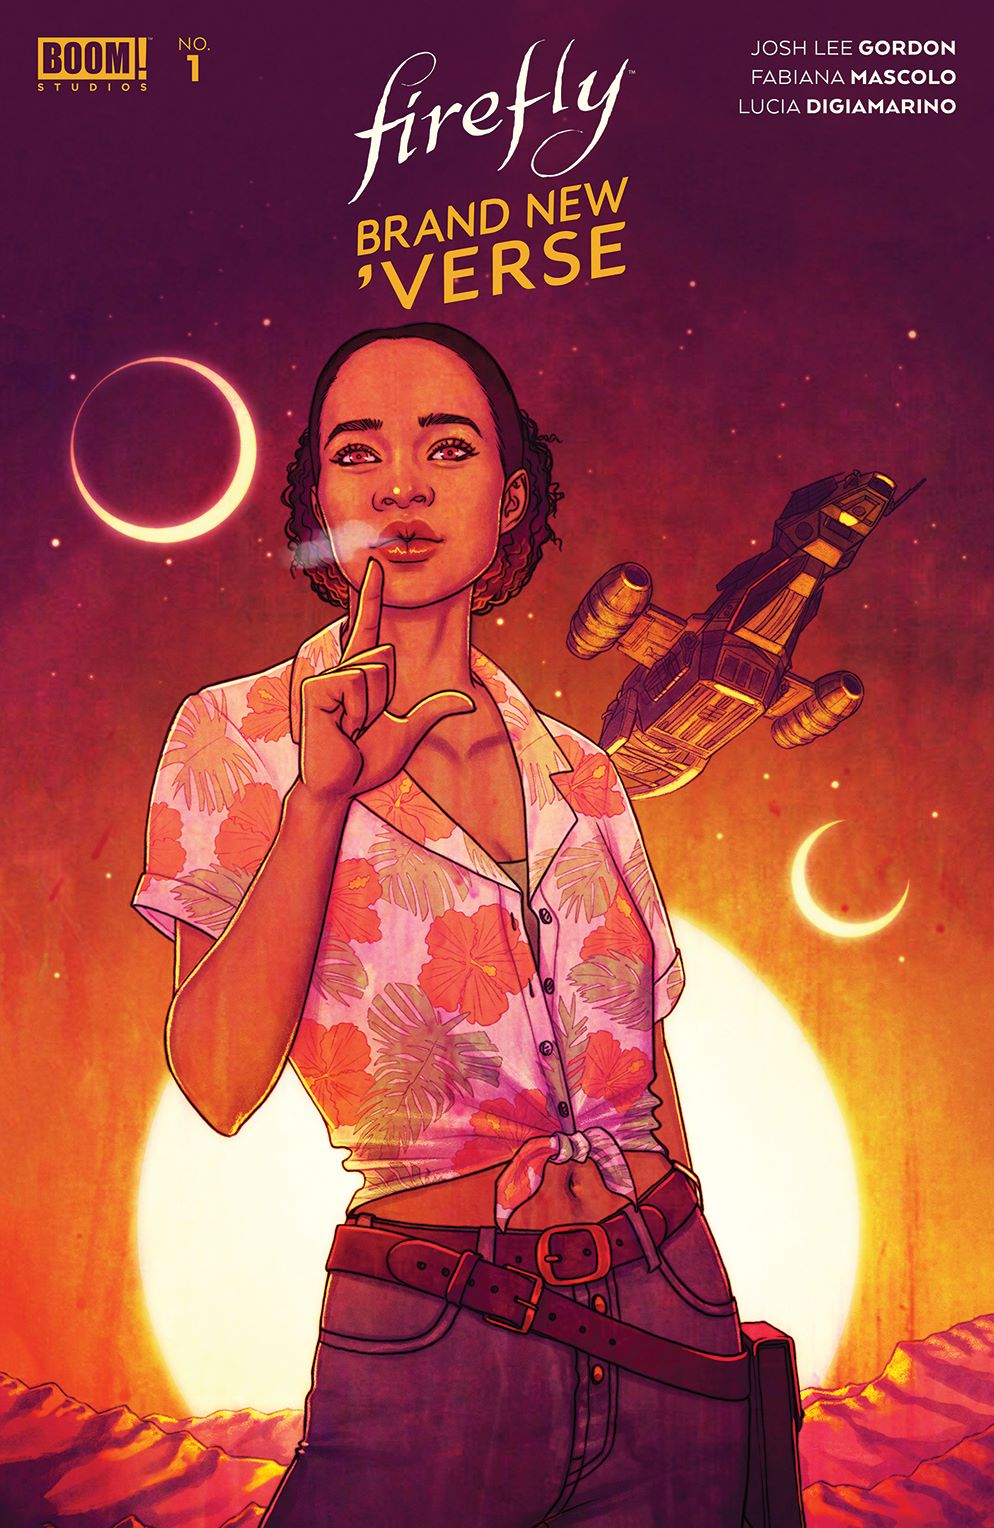 Firefly_BrandNewVerse_001_Cover_D_Variant ComicList Previews: FIREFLY BRAND NEW 'VERSE #1